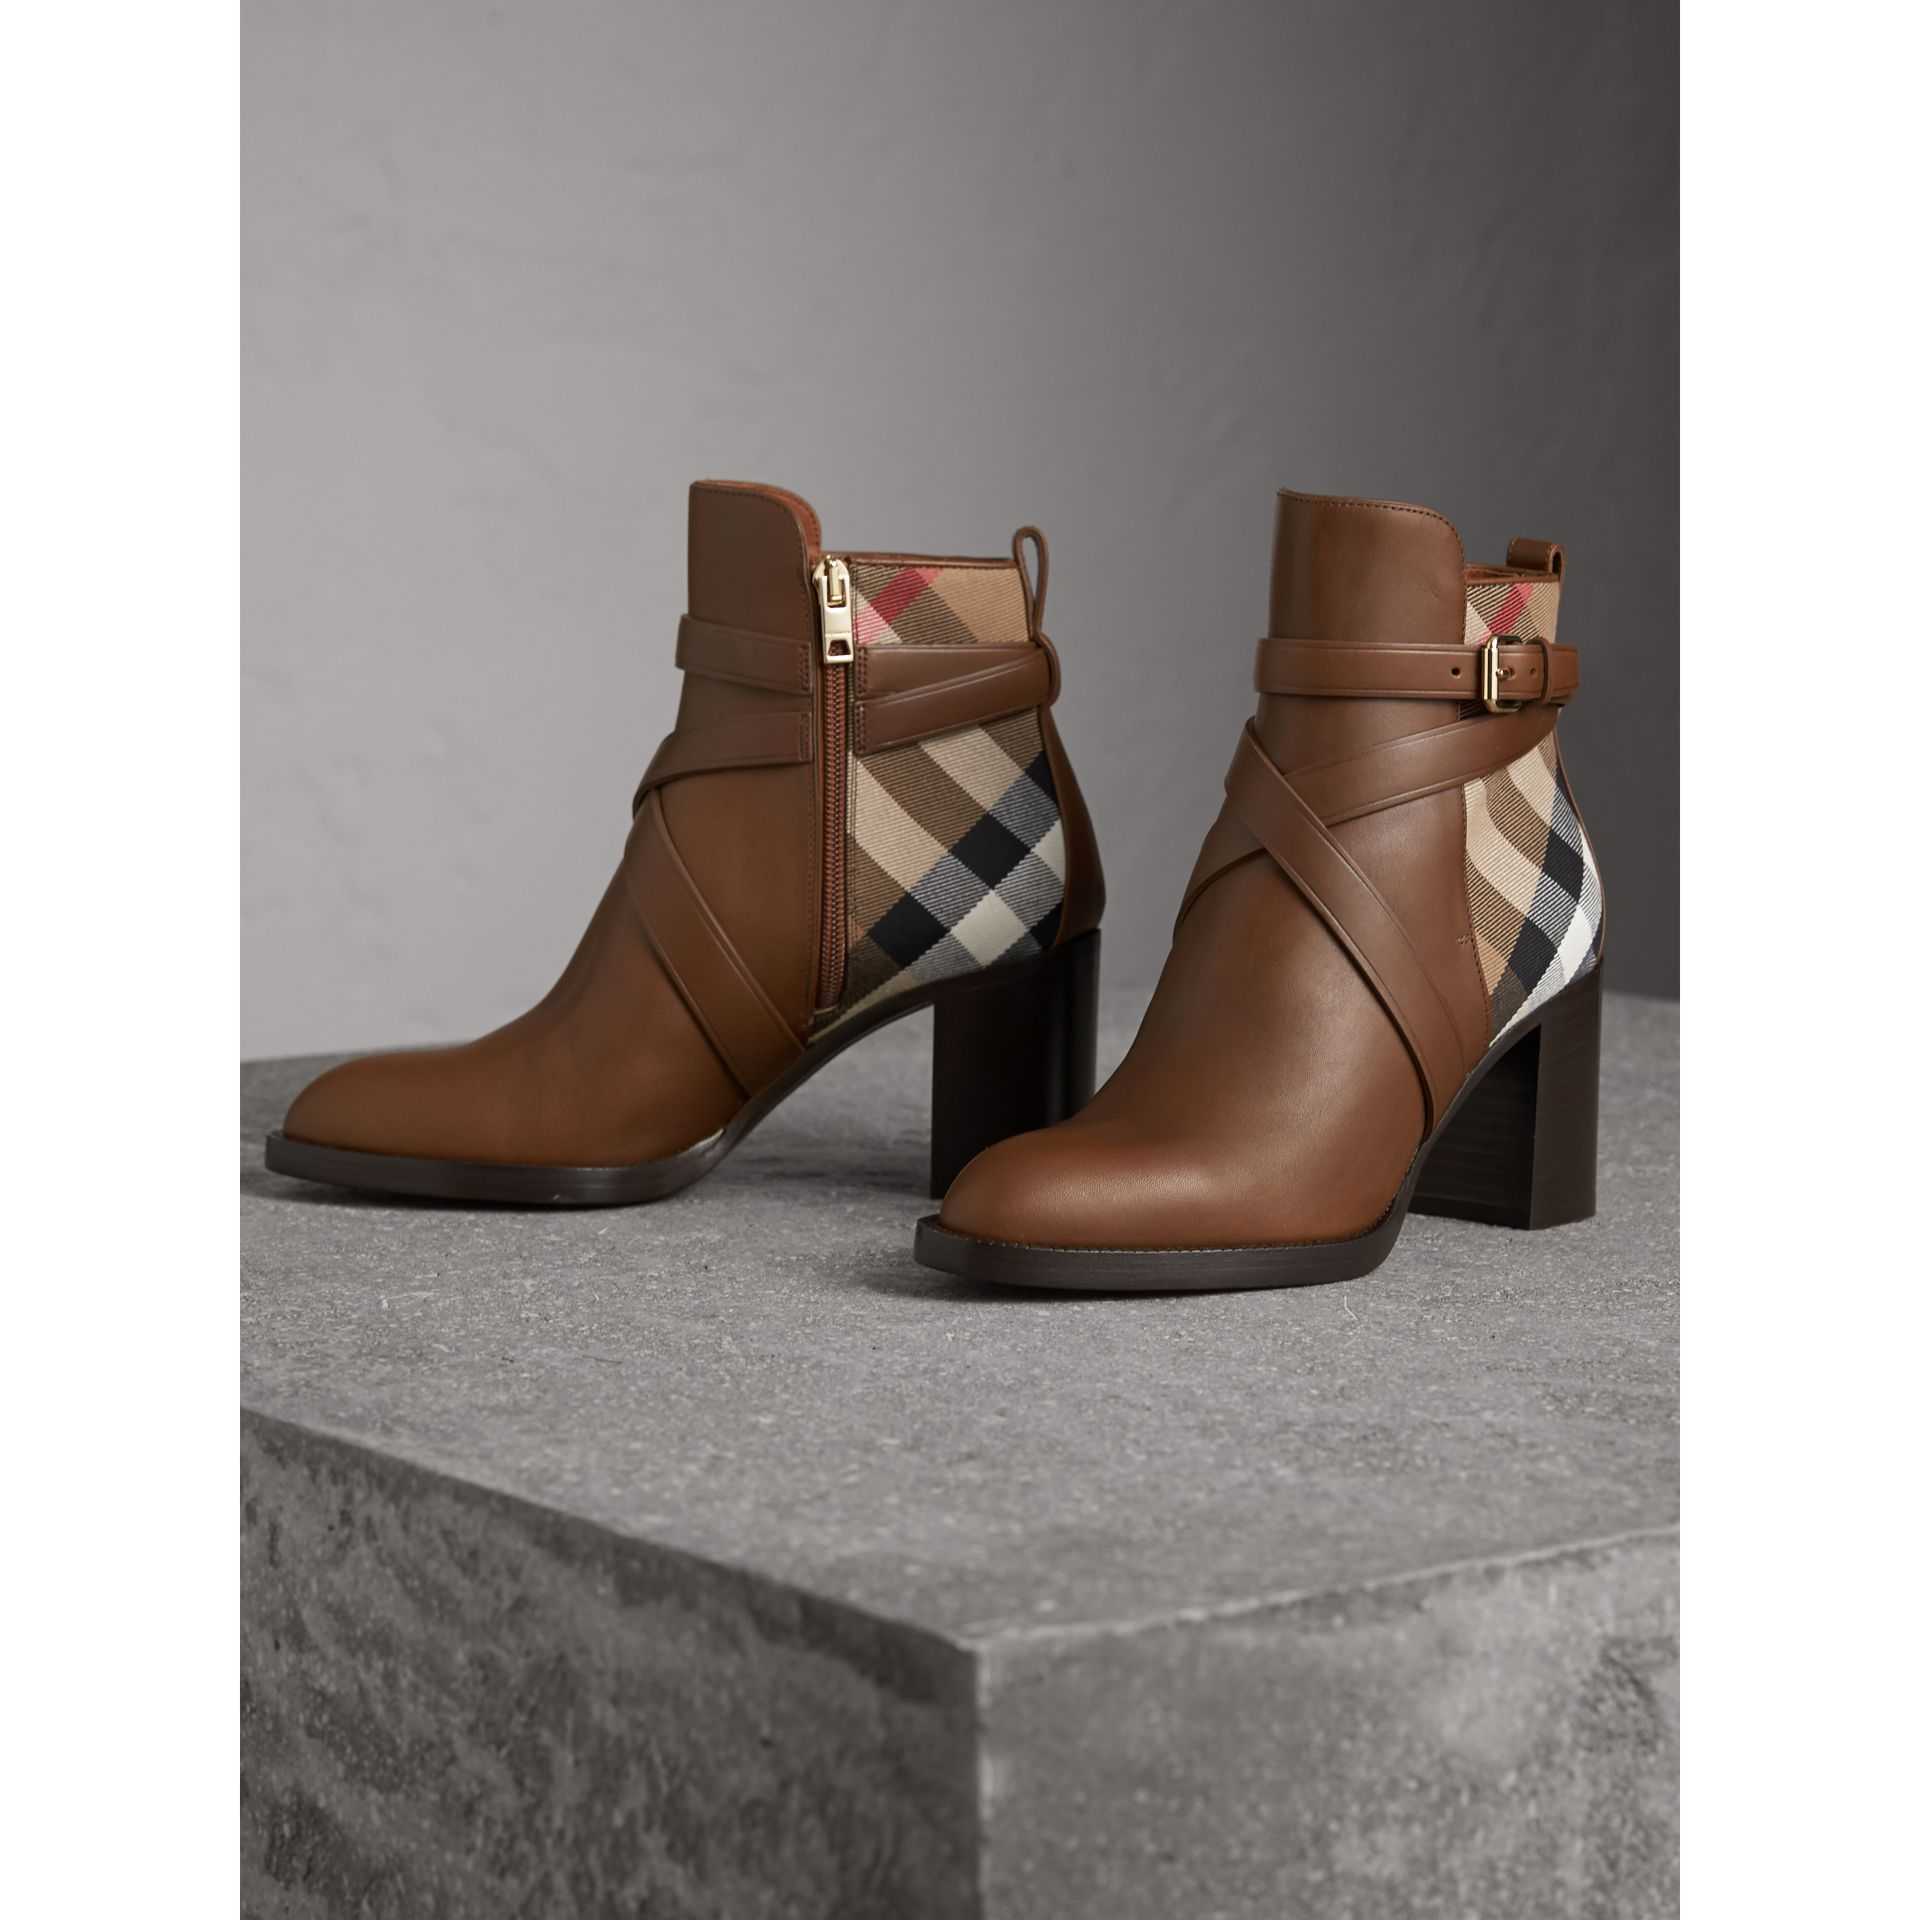 Bottines en cuir et coton House check (Camel Vif) - Femme | Burberry Canada - photo de la galerie 4